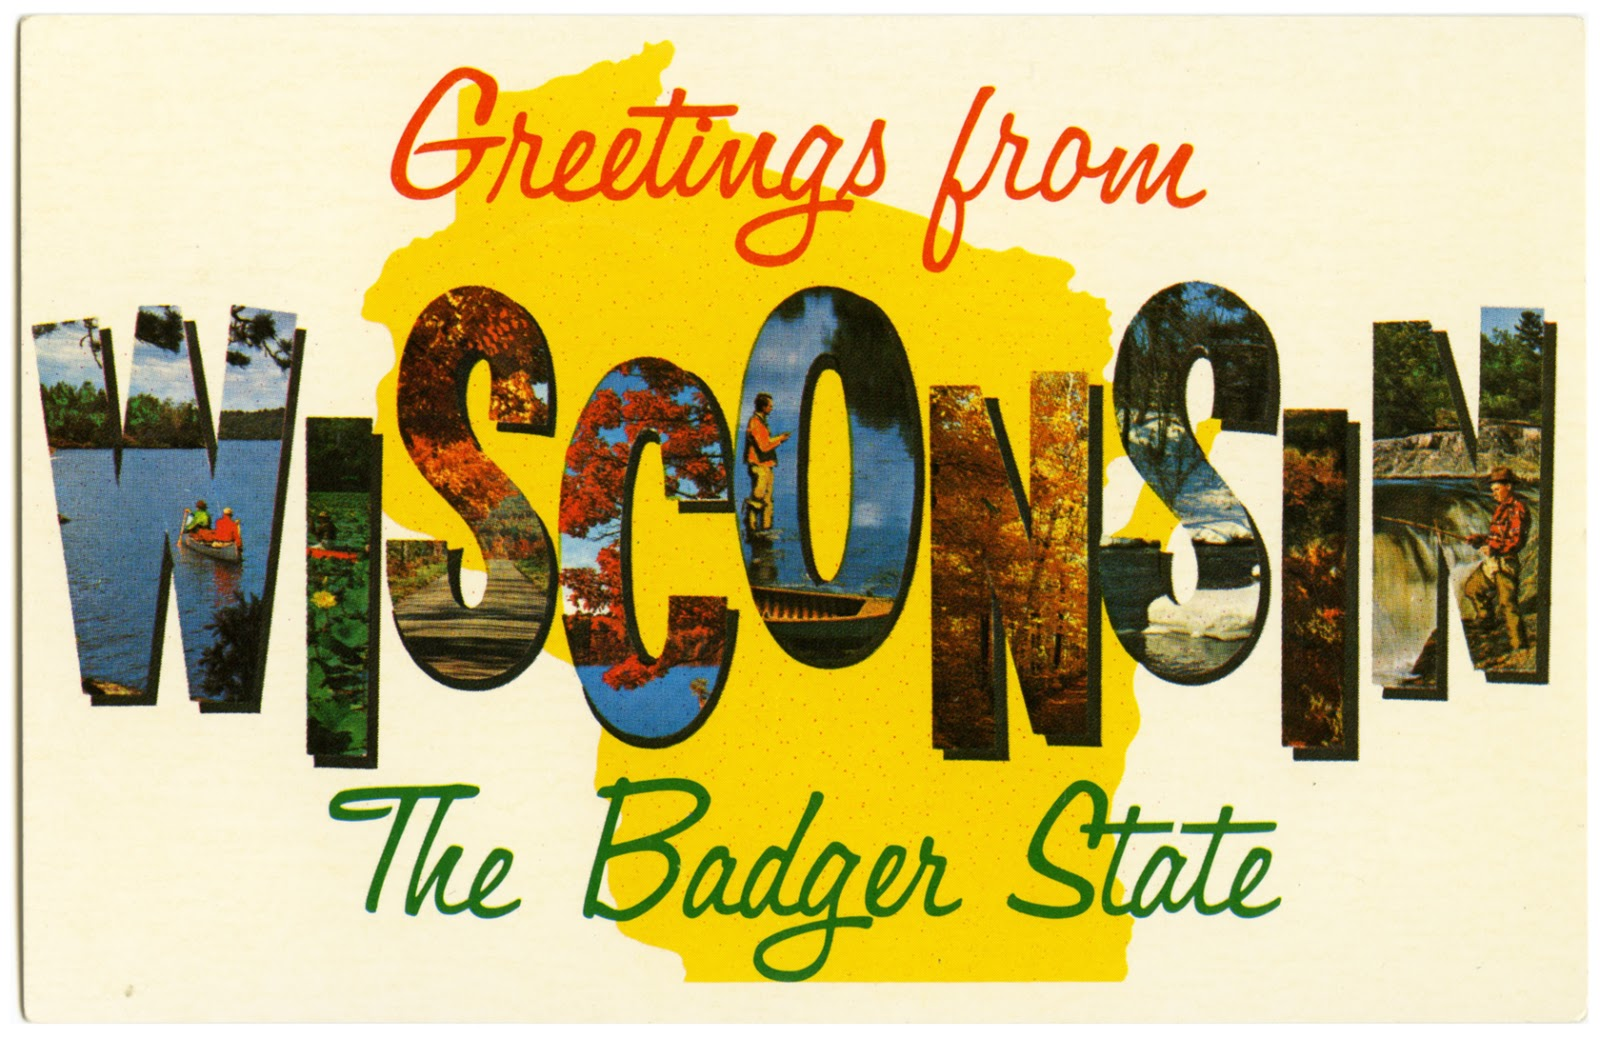 The wisconsin project december 2012 found greetings from wisconsin the badger state wisconsin americas dairyland published by johnson printing eau claire wis circa 1970s kristyandbryce Images